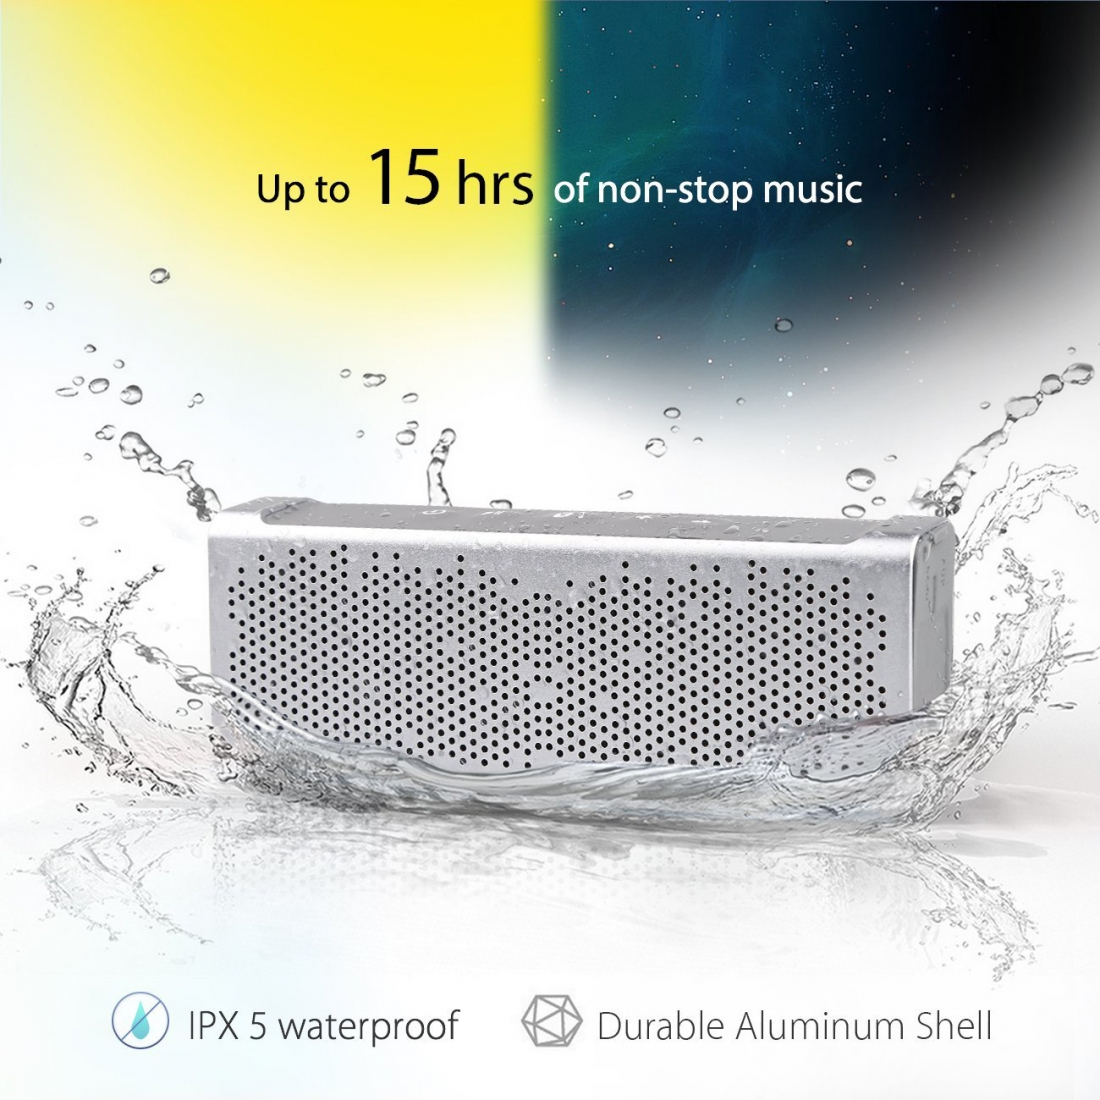 /tmo/cool_stuff_found/post/a-decent-little-waterproof-bluetooth-speaker-for-under-50